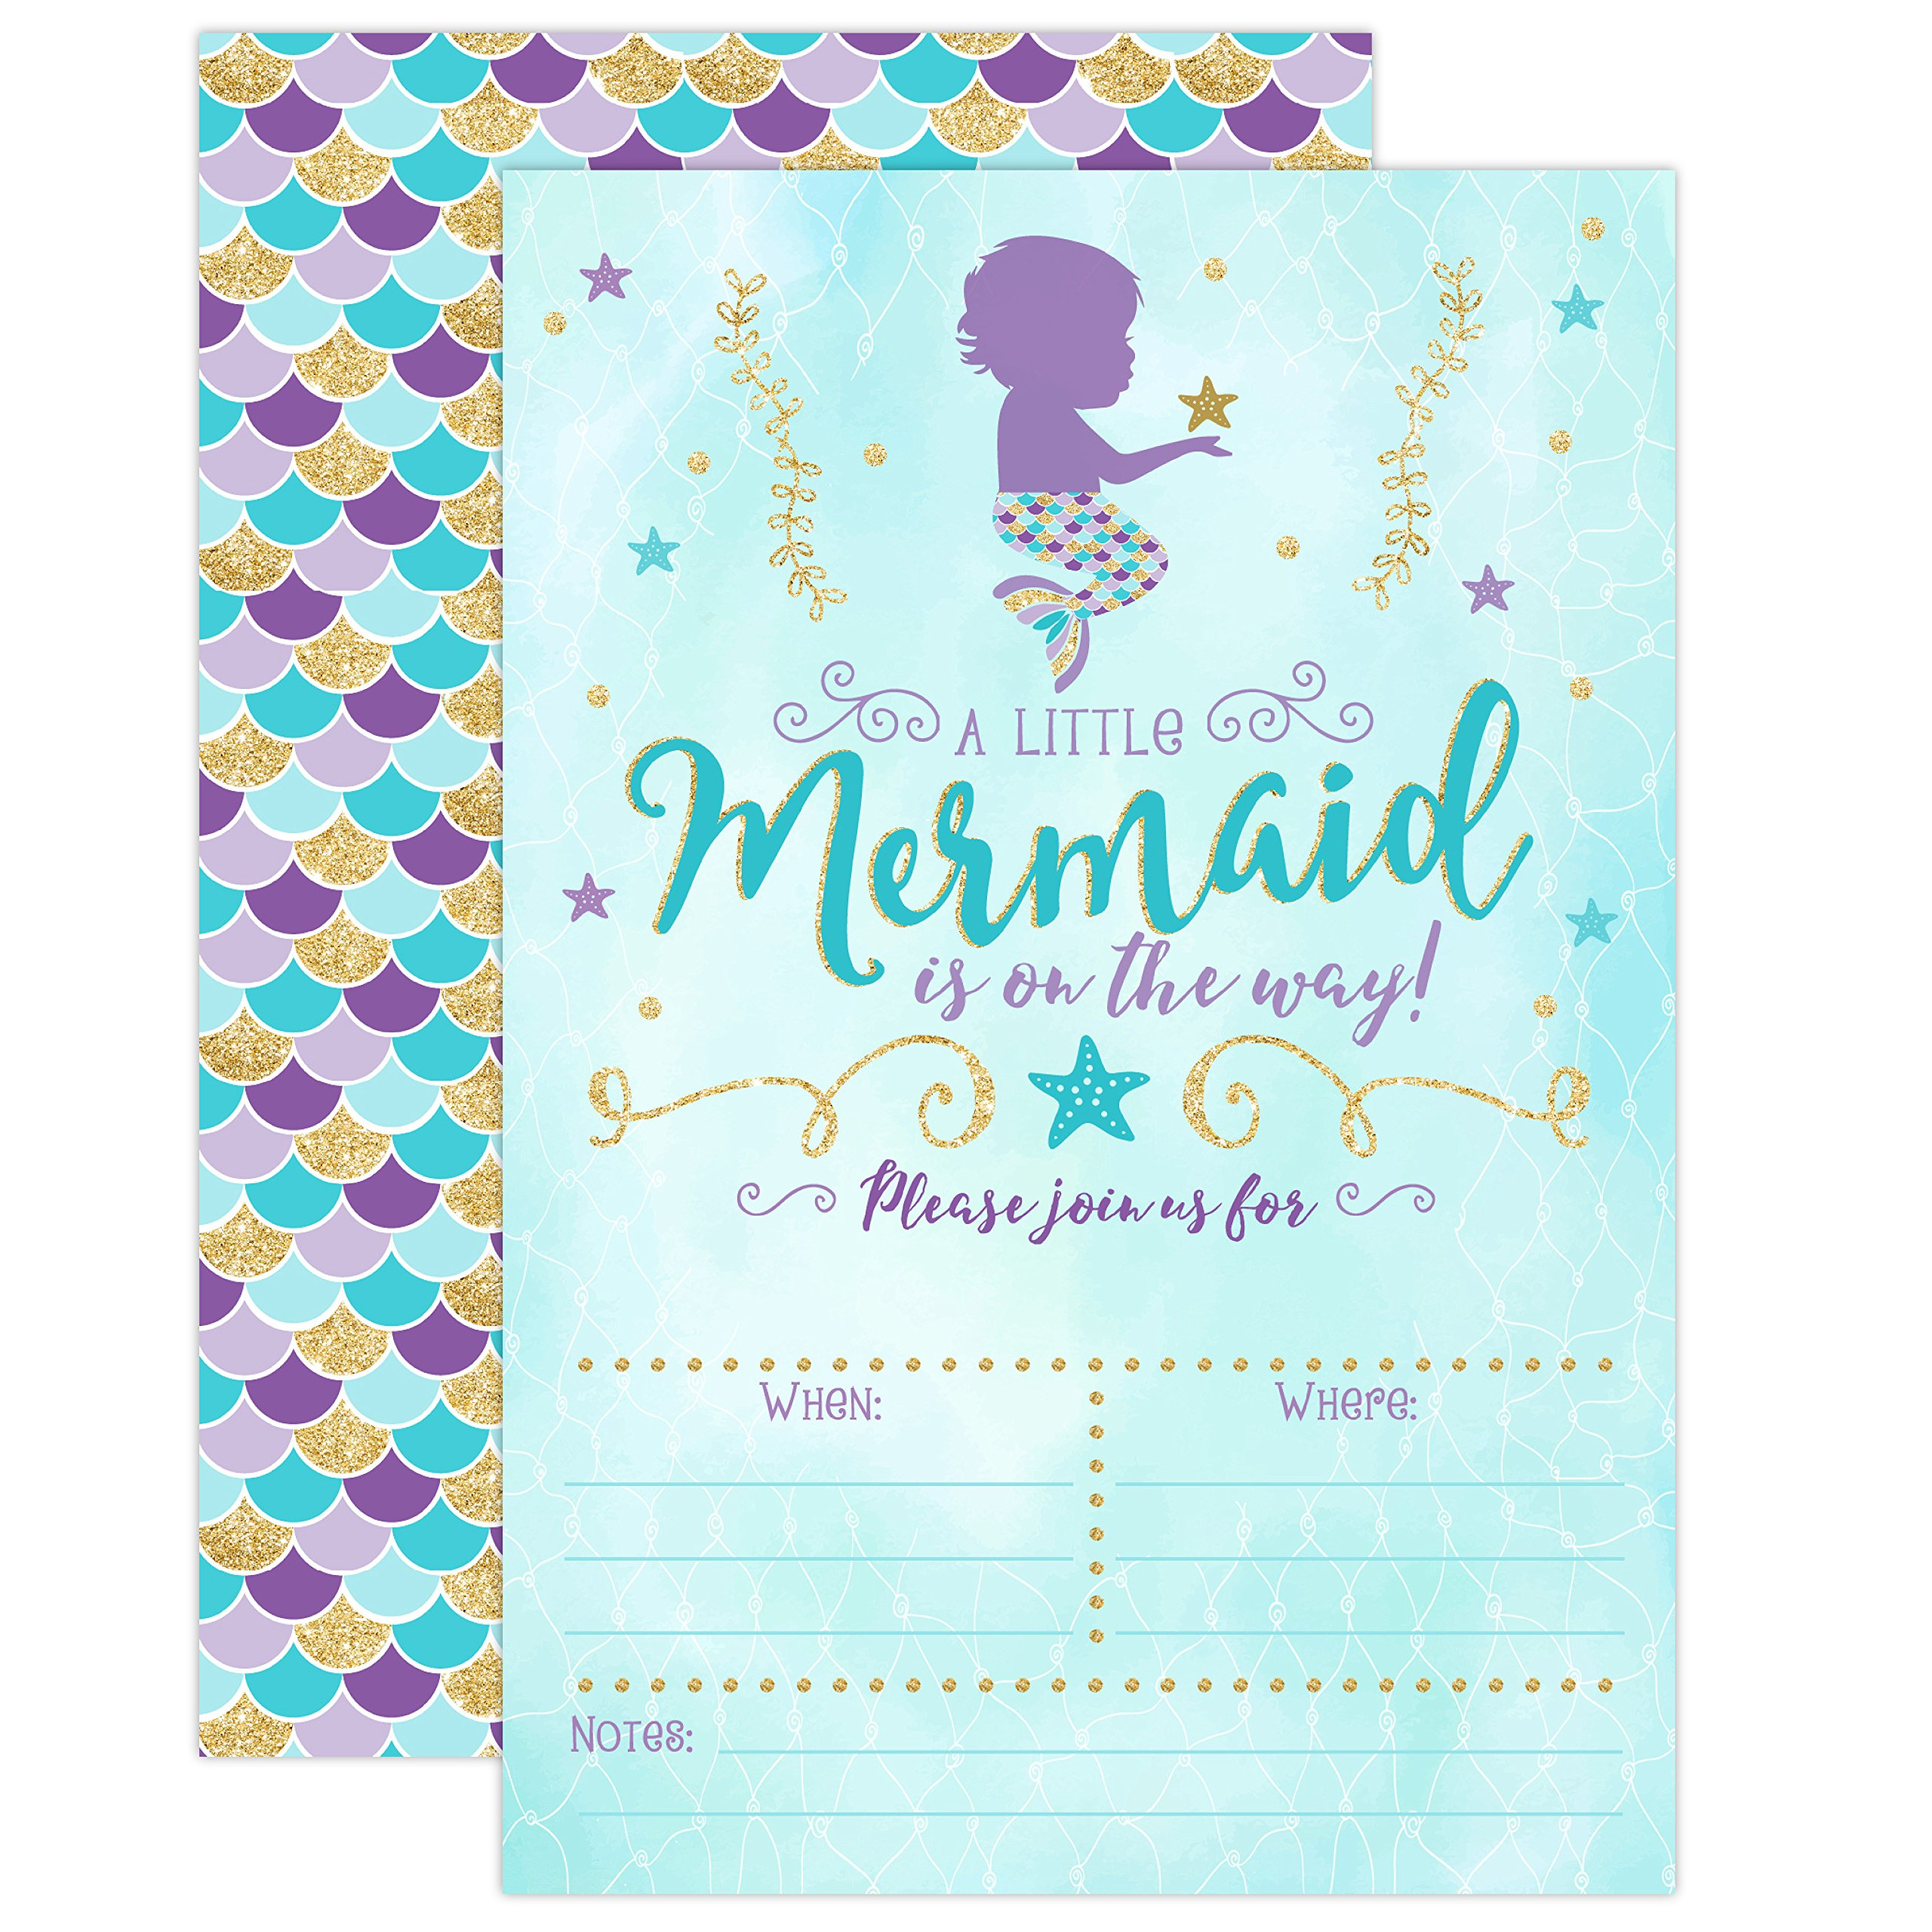 Amazon.com: Mermaid Diaper Raffle Cards for a Baby Shower - 50 Count ...